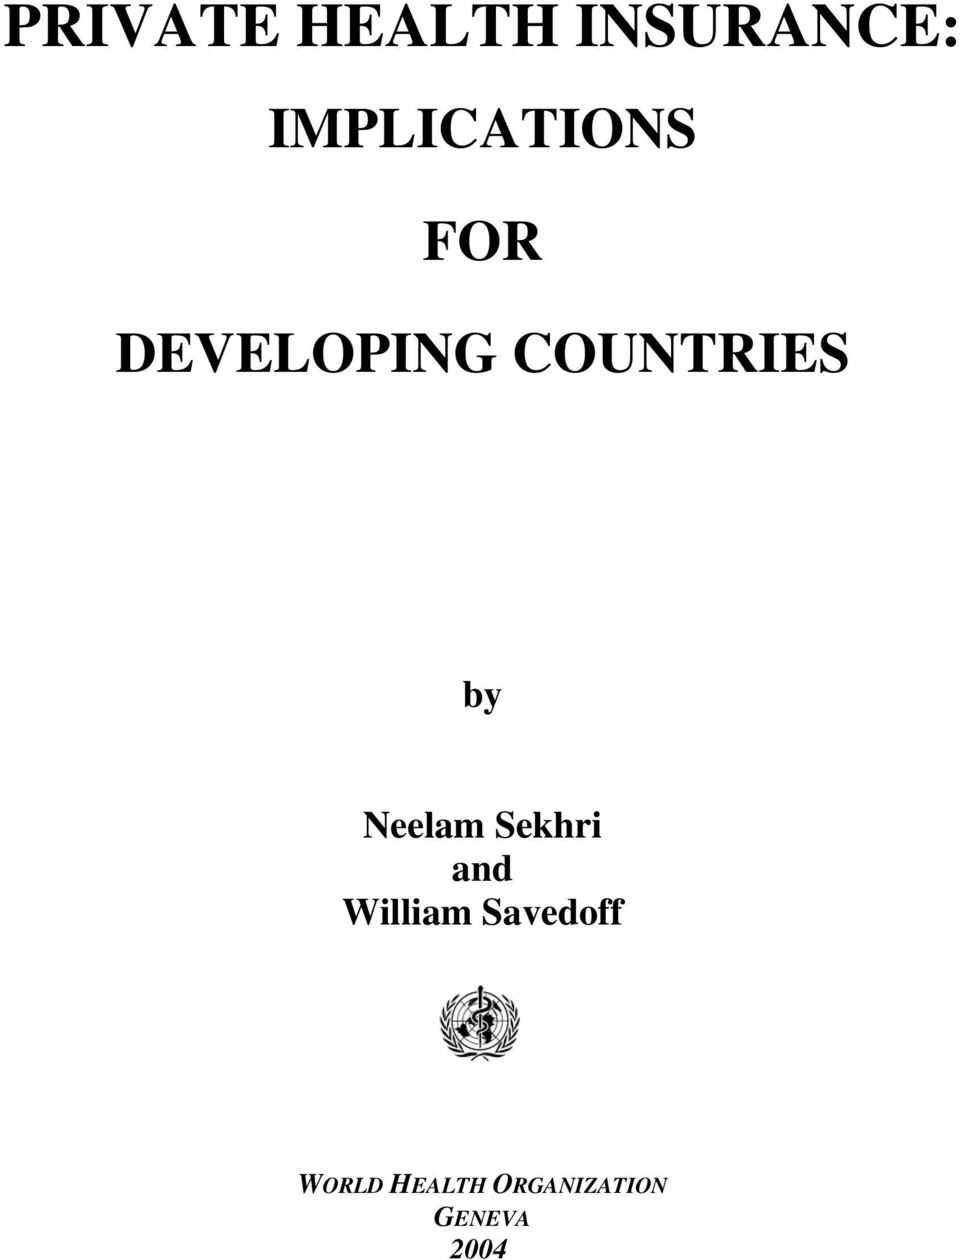 COUNTRIES by Neelam Sekhri and